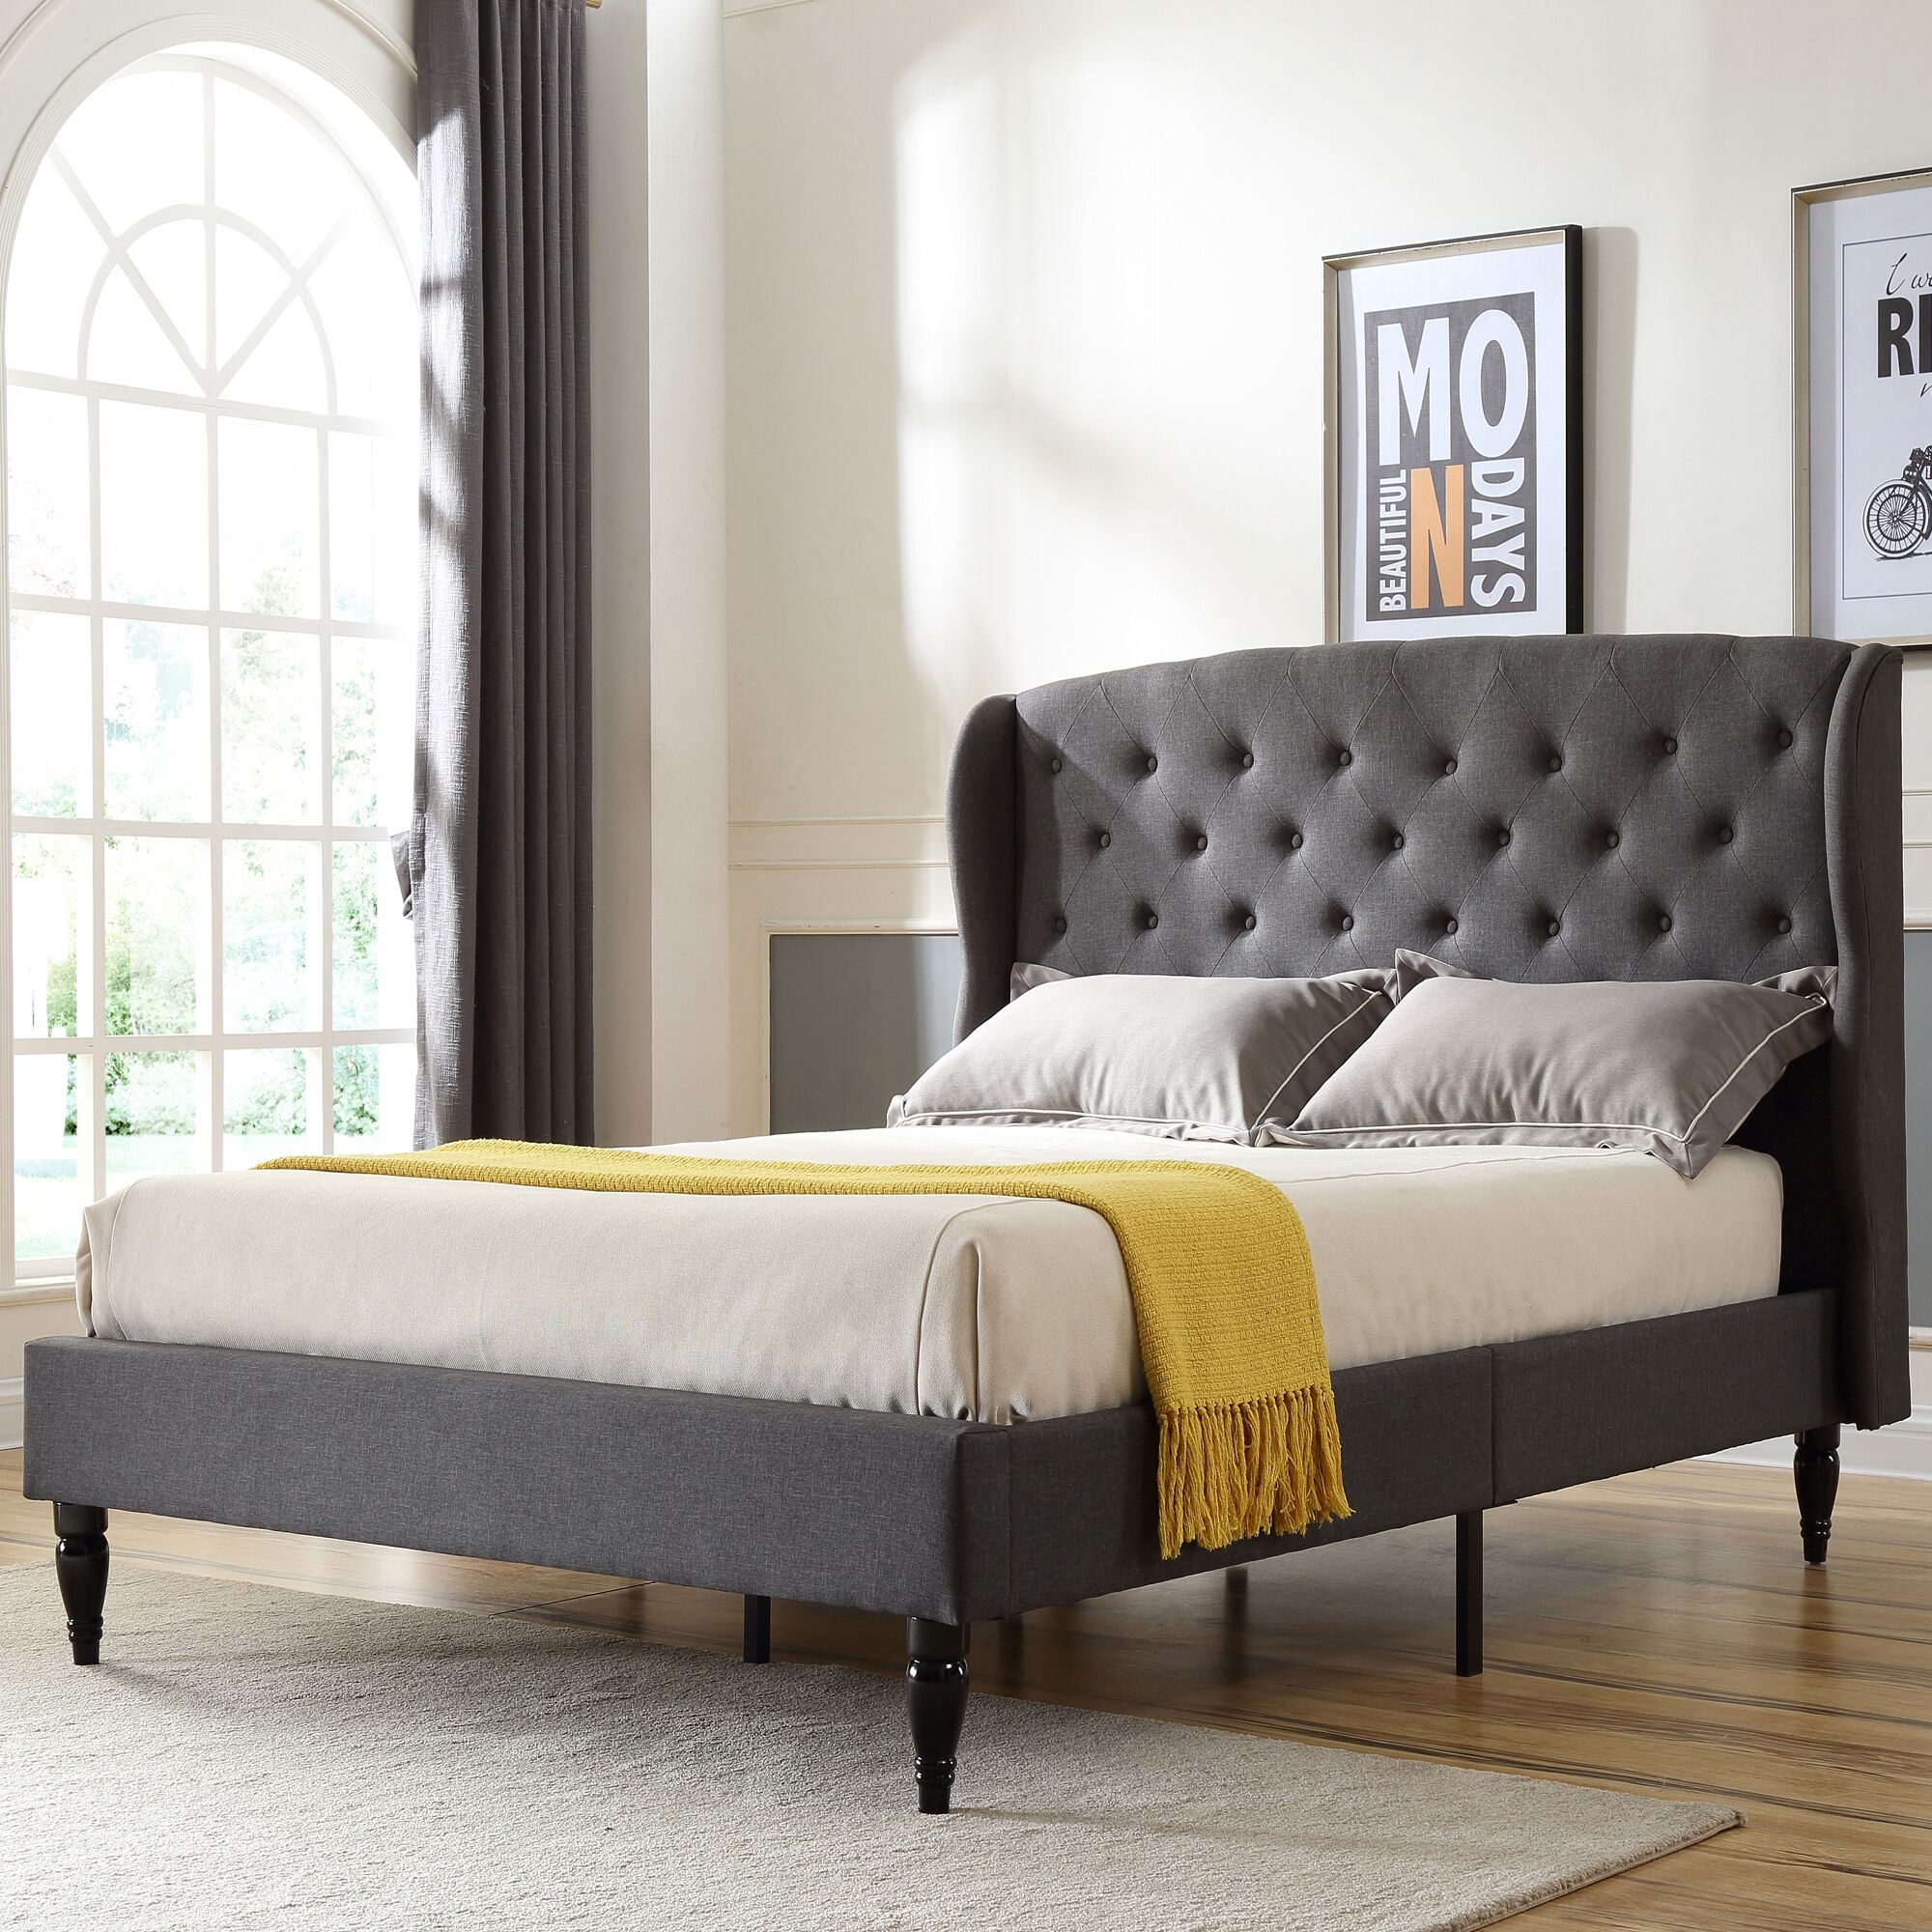 Nilah Upholstered Platform Bed Size: Full/Double, Color: Gray